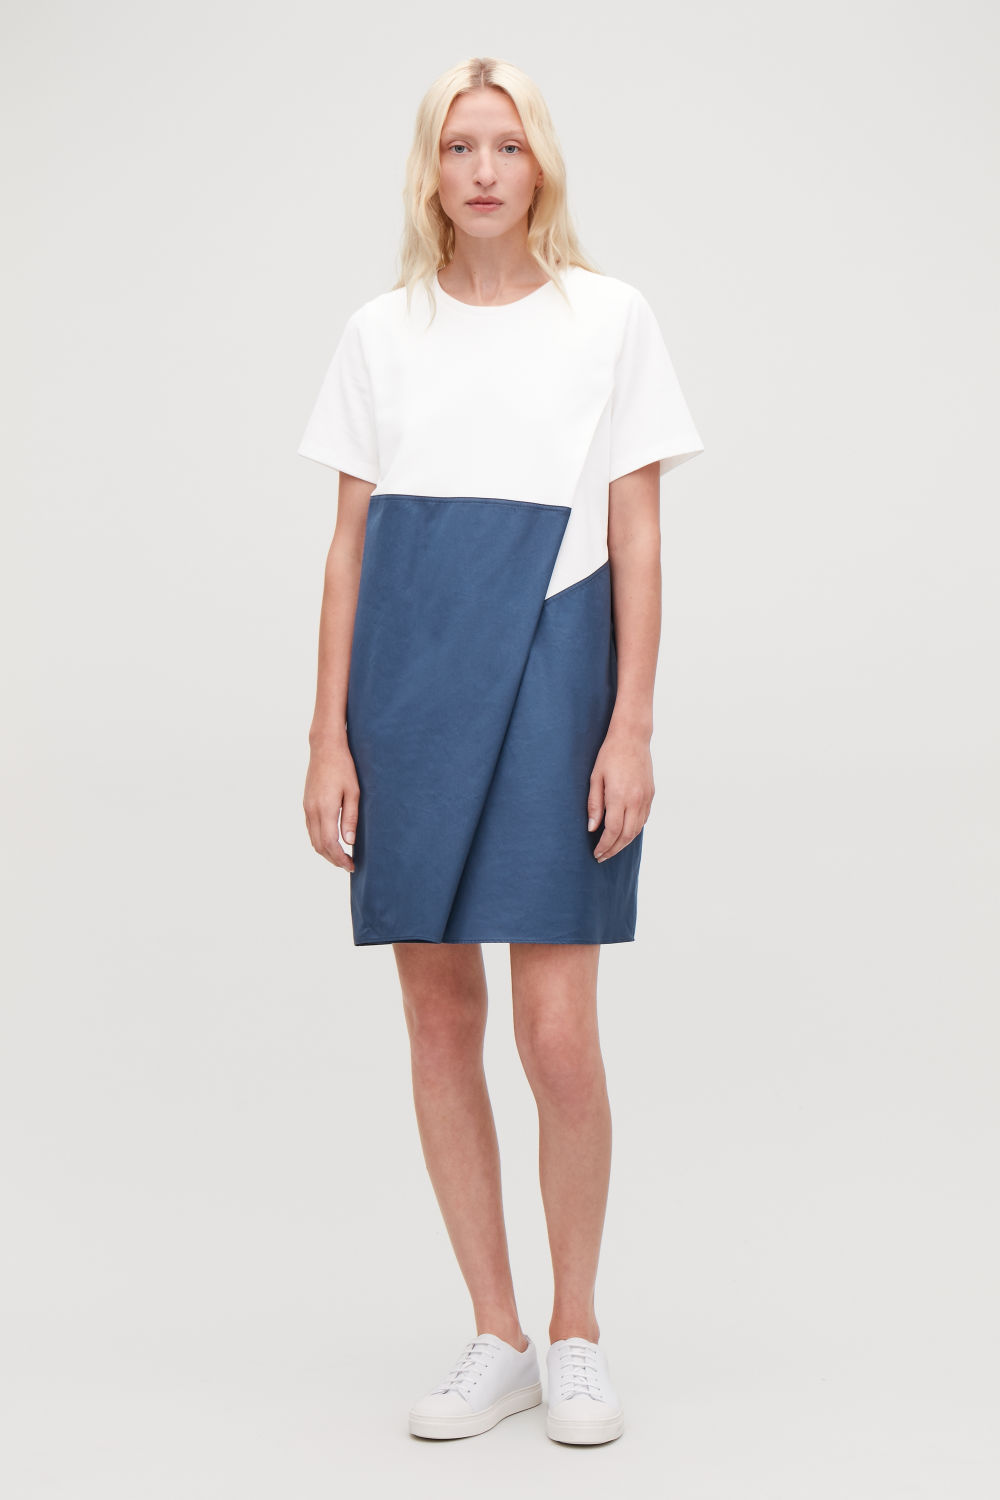 COS DRESS WITH OVERLAP FRONT,Navy \/ white